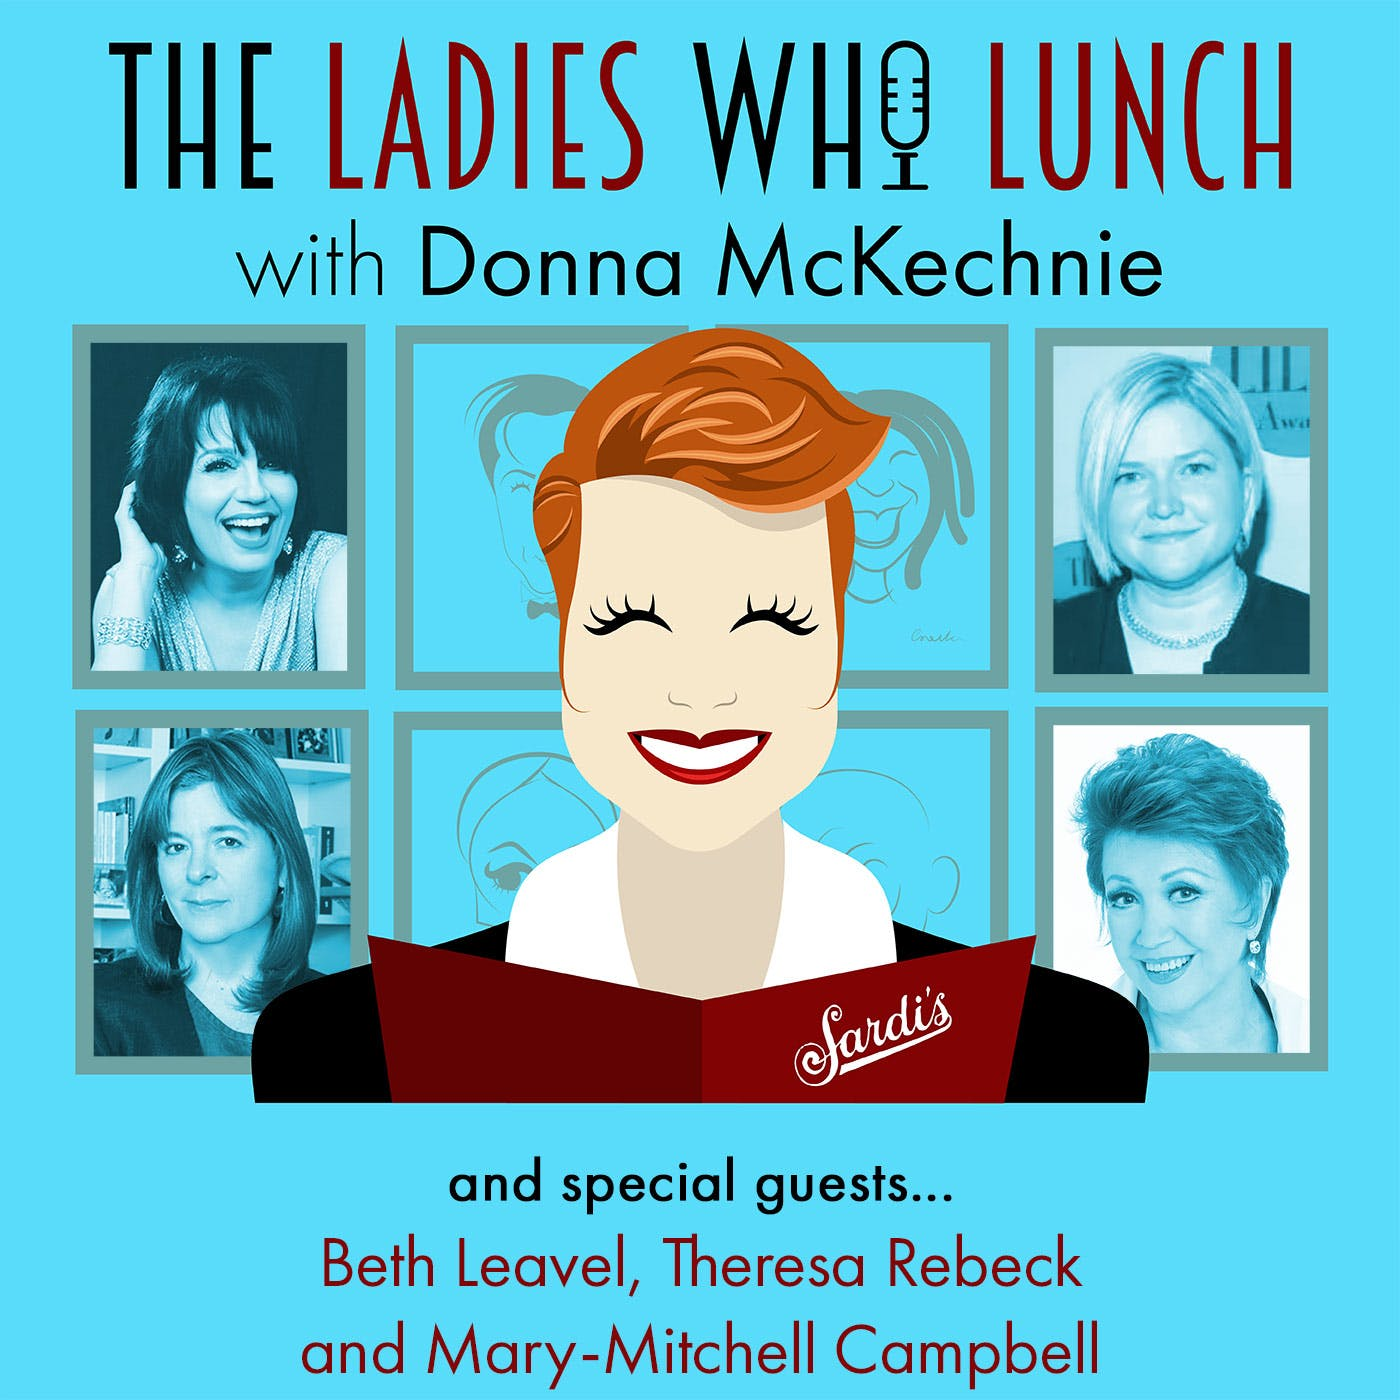 #5 - Beth Leavel, Theresa Rebeck, and Mary-Mitchell Campbell